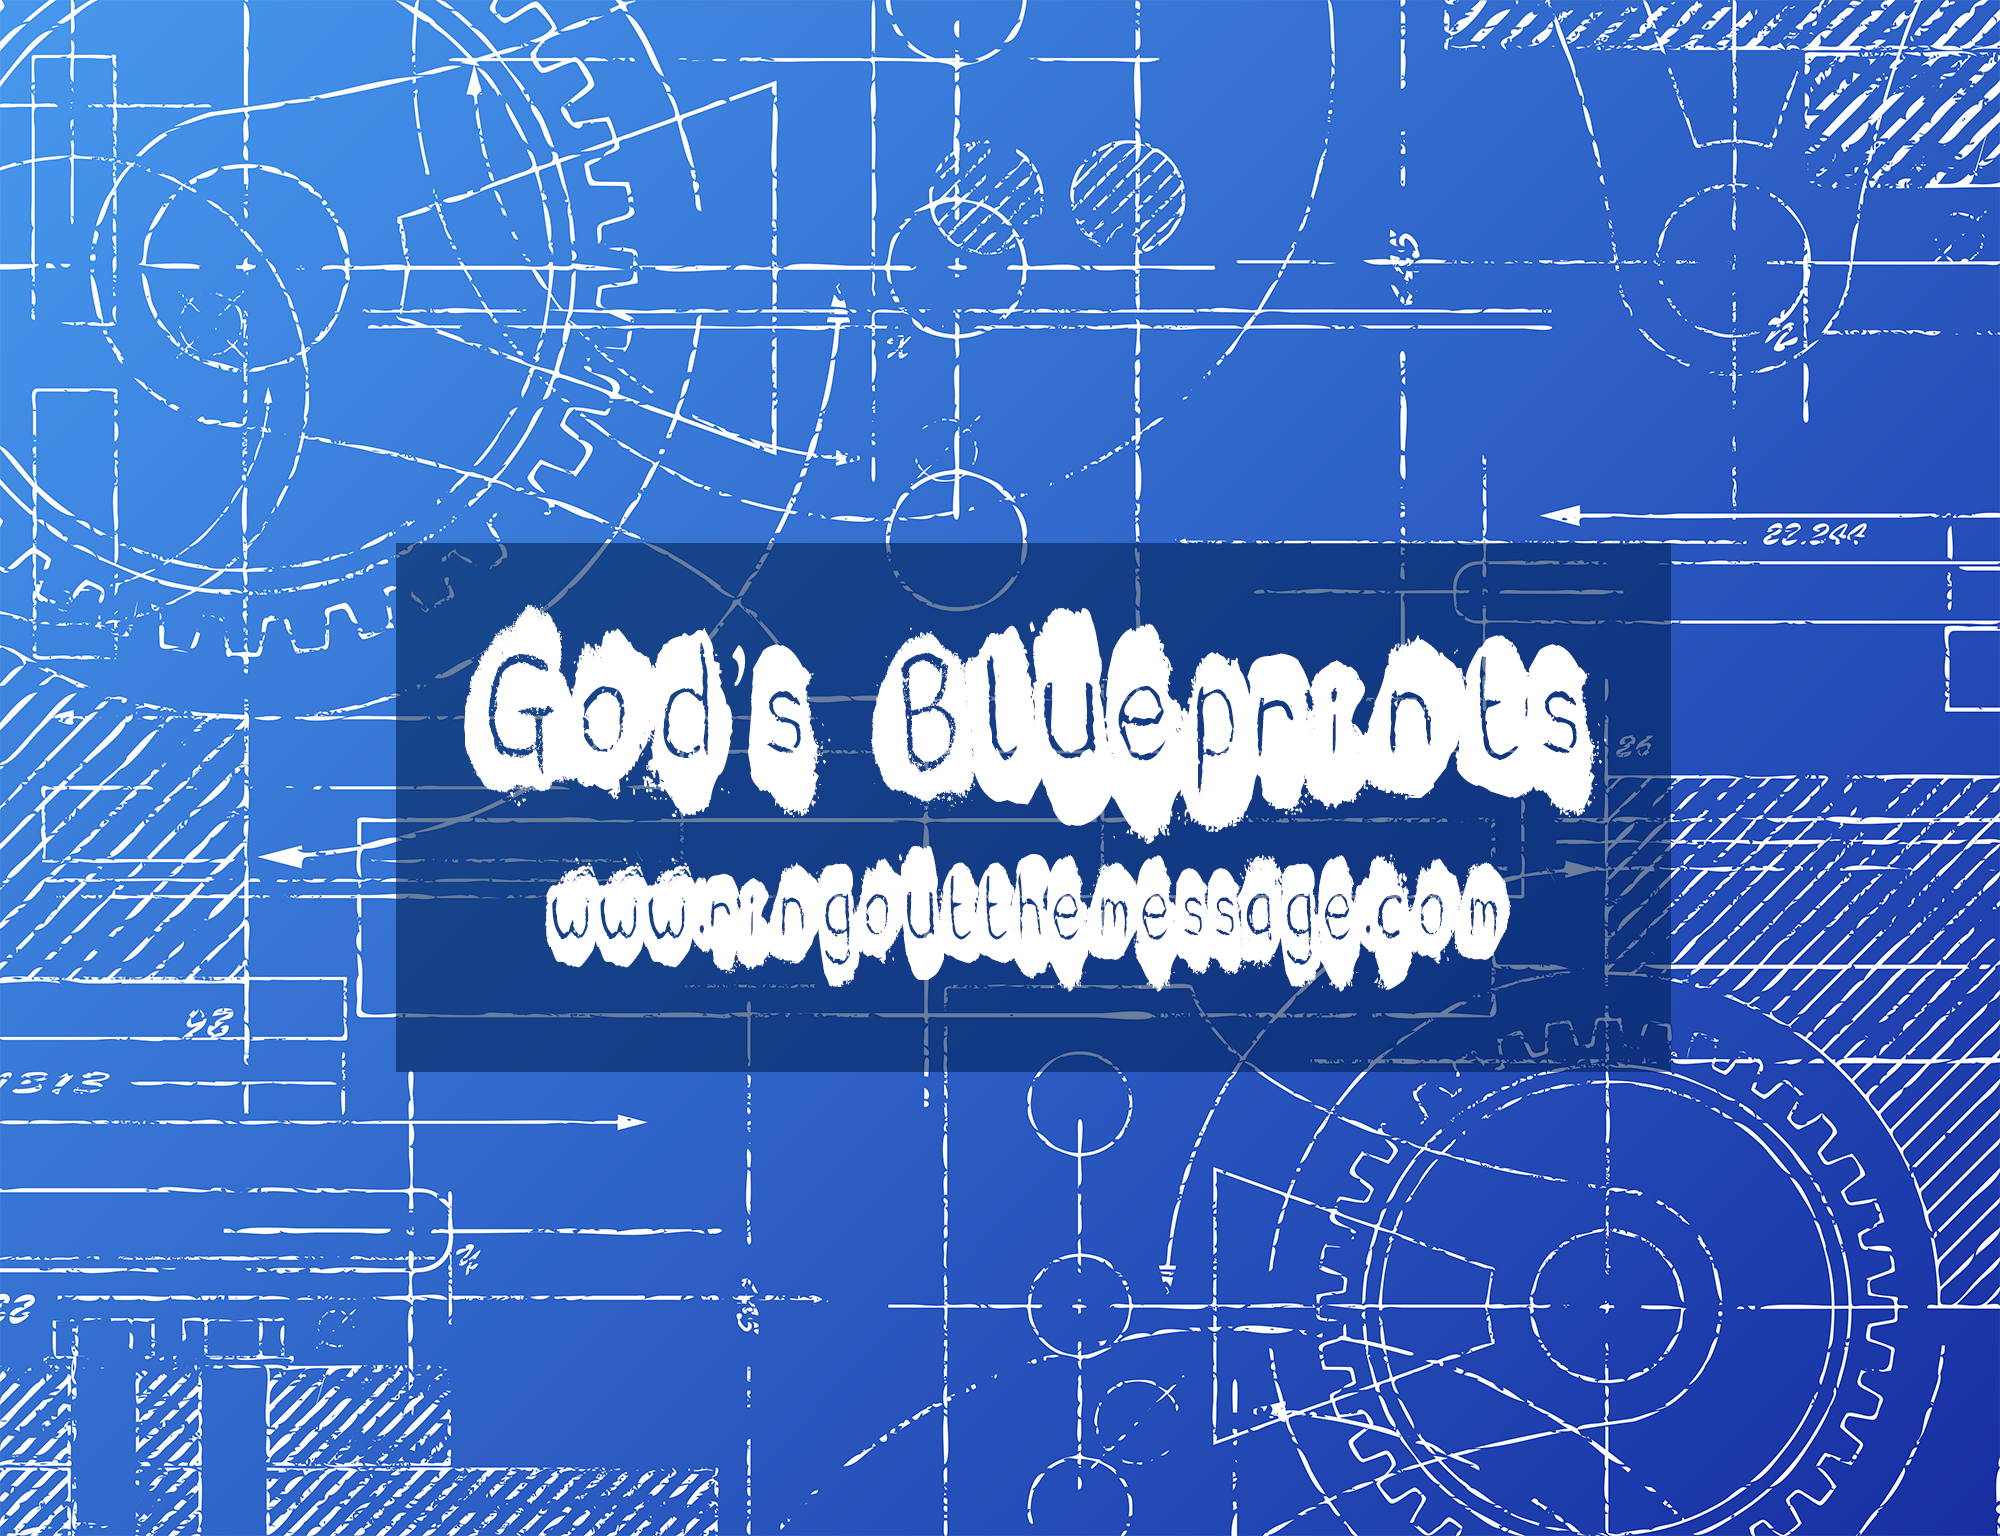 Gods blueprints god is the creator of the universe and all things therein isaiah 4518 colossians 116 he created man in his image giving him a never dying soul malvernweather Gallery